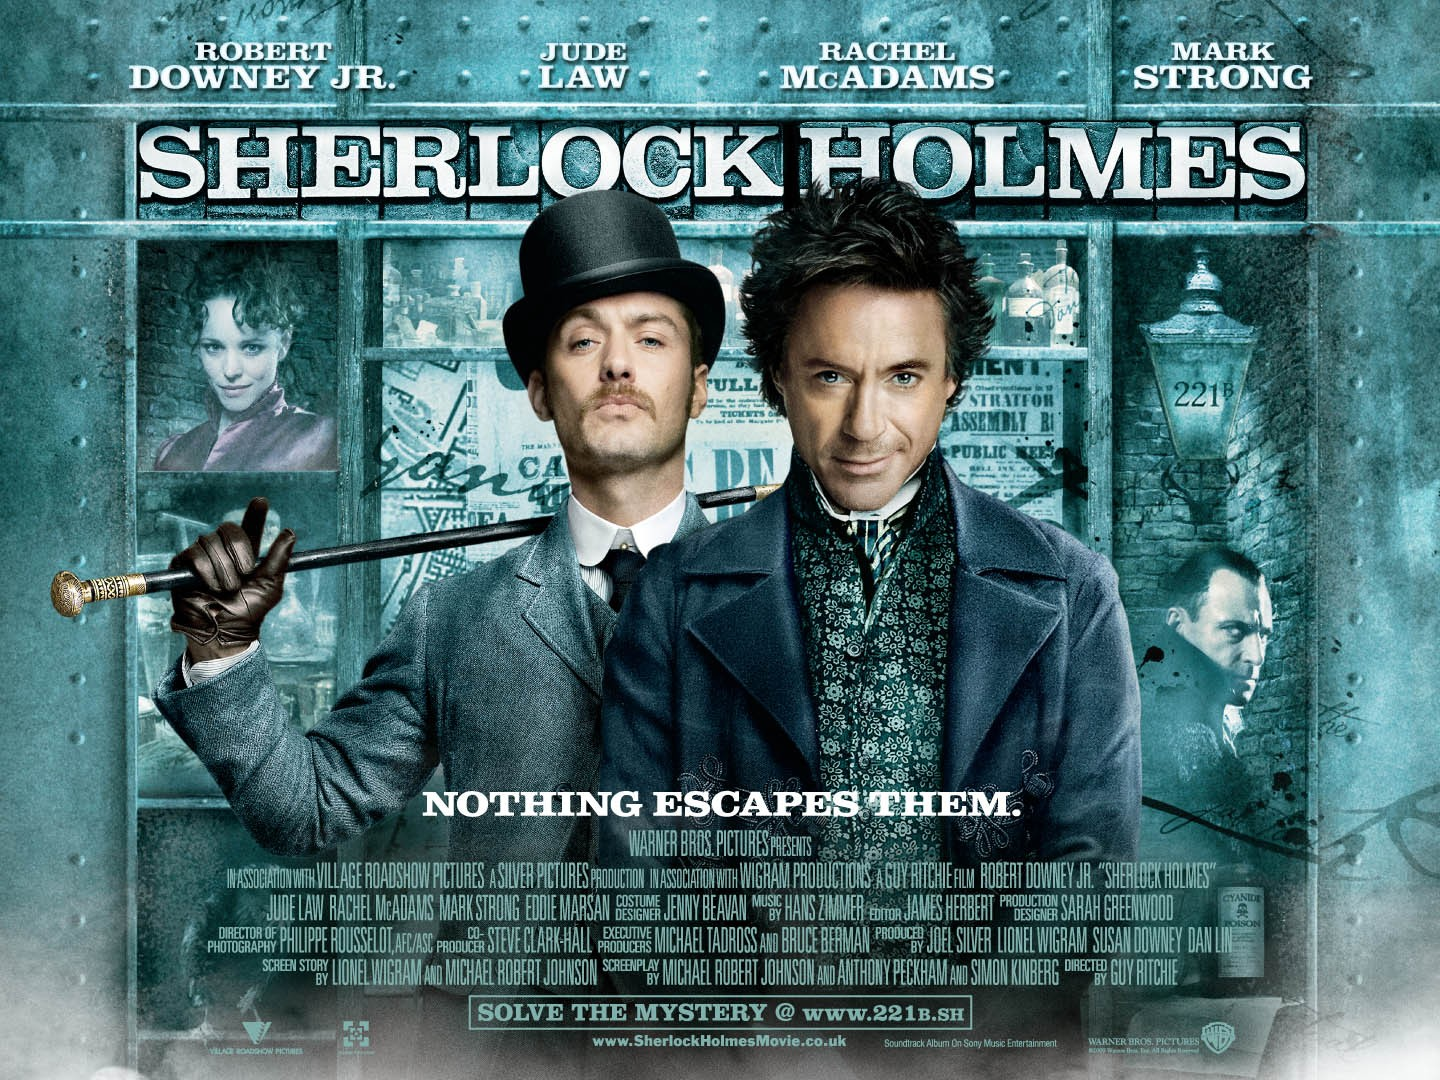 Movie Posters 2009: Sherlock Holmes UK Poster